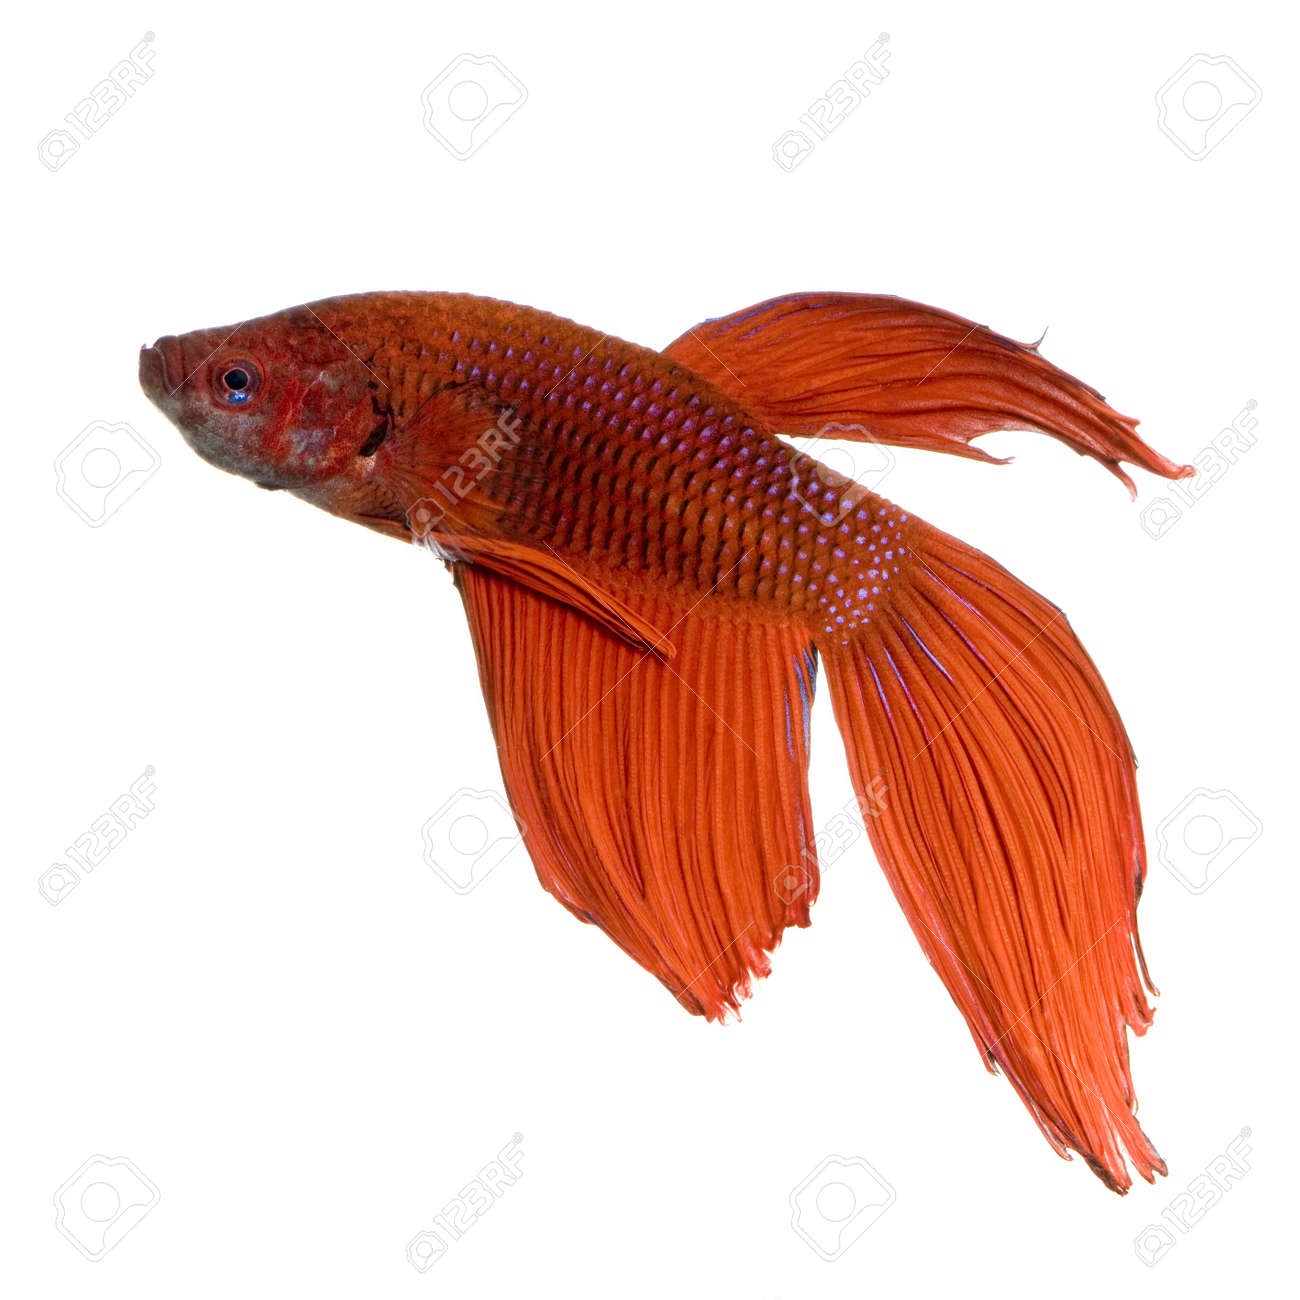 shot of a red Siamese fighting fish under water in front of a white background Stock Photo - 1132229